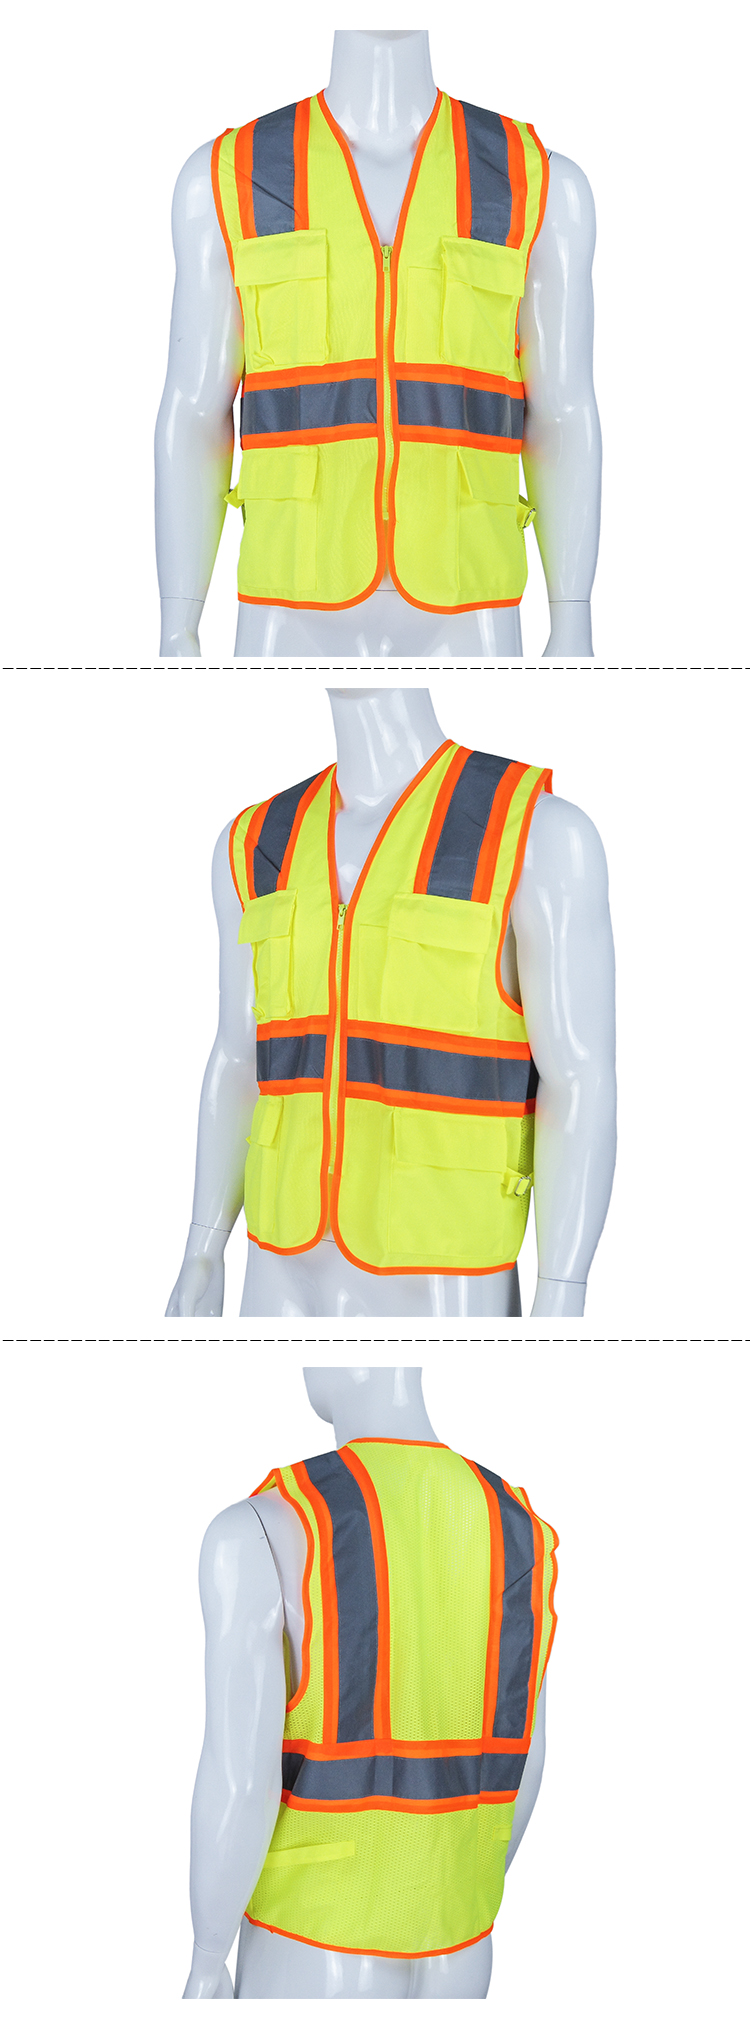 Traffic Vest with Pocket